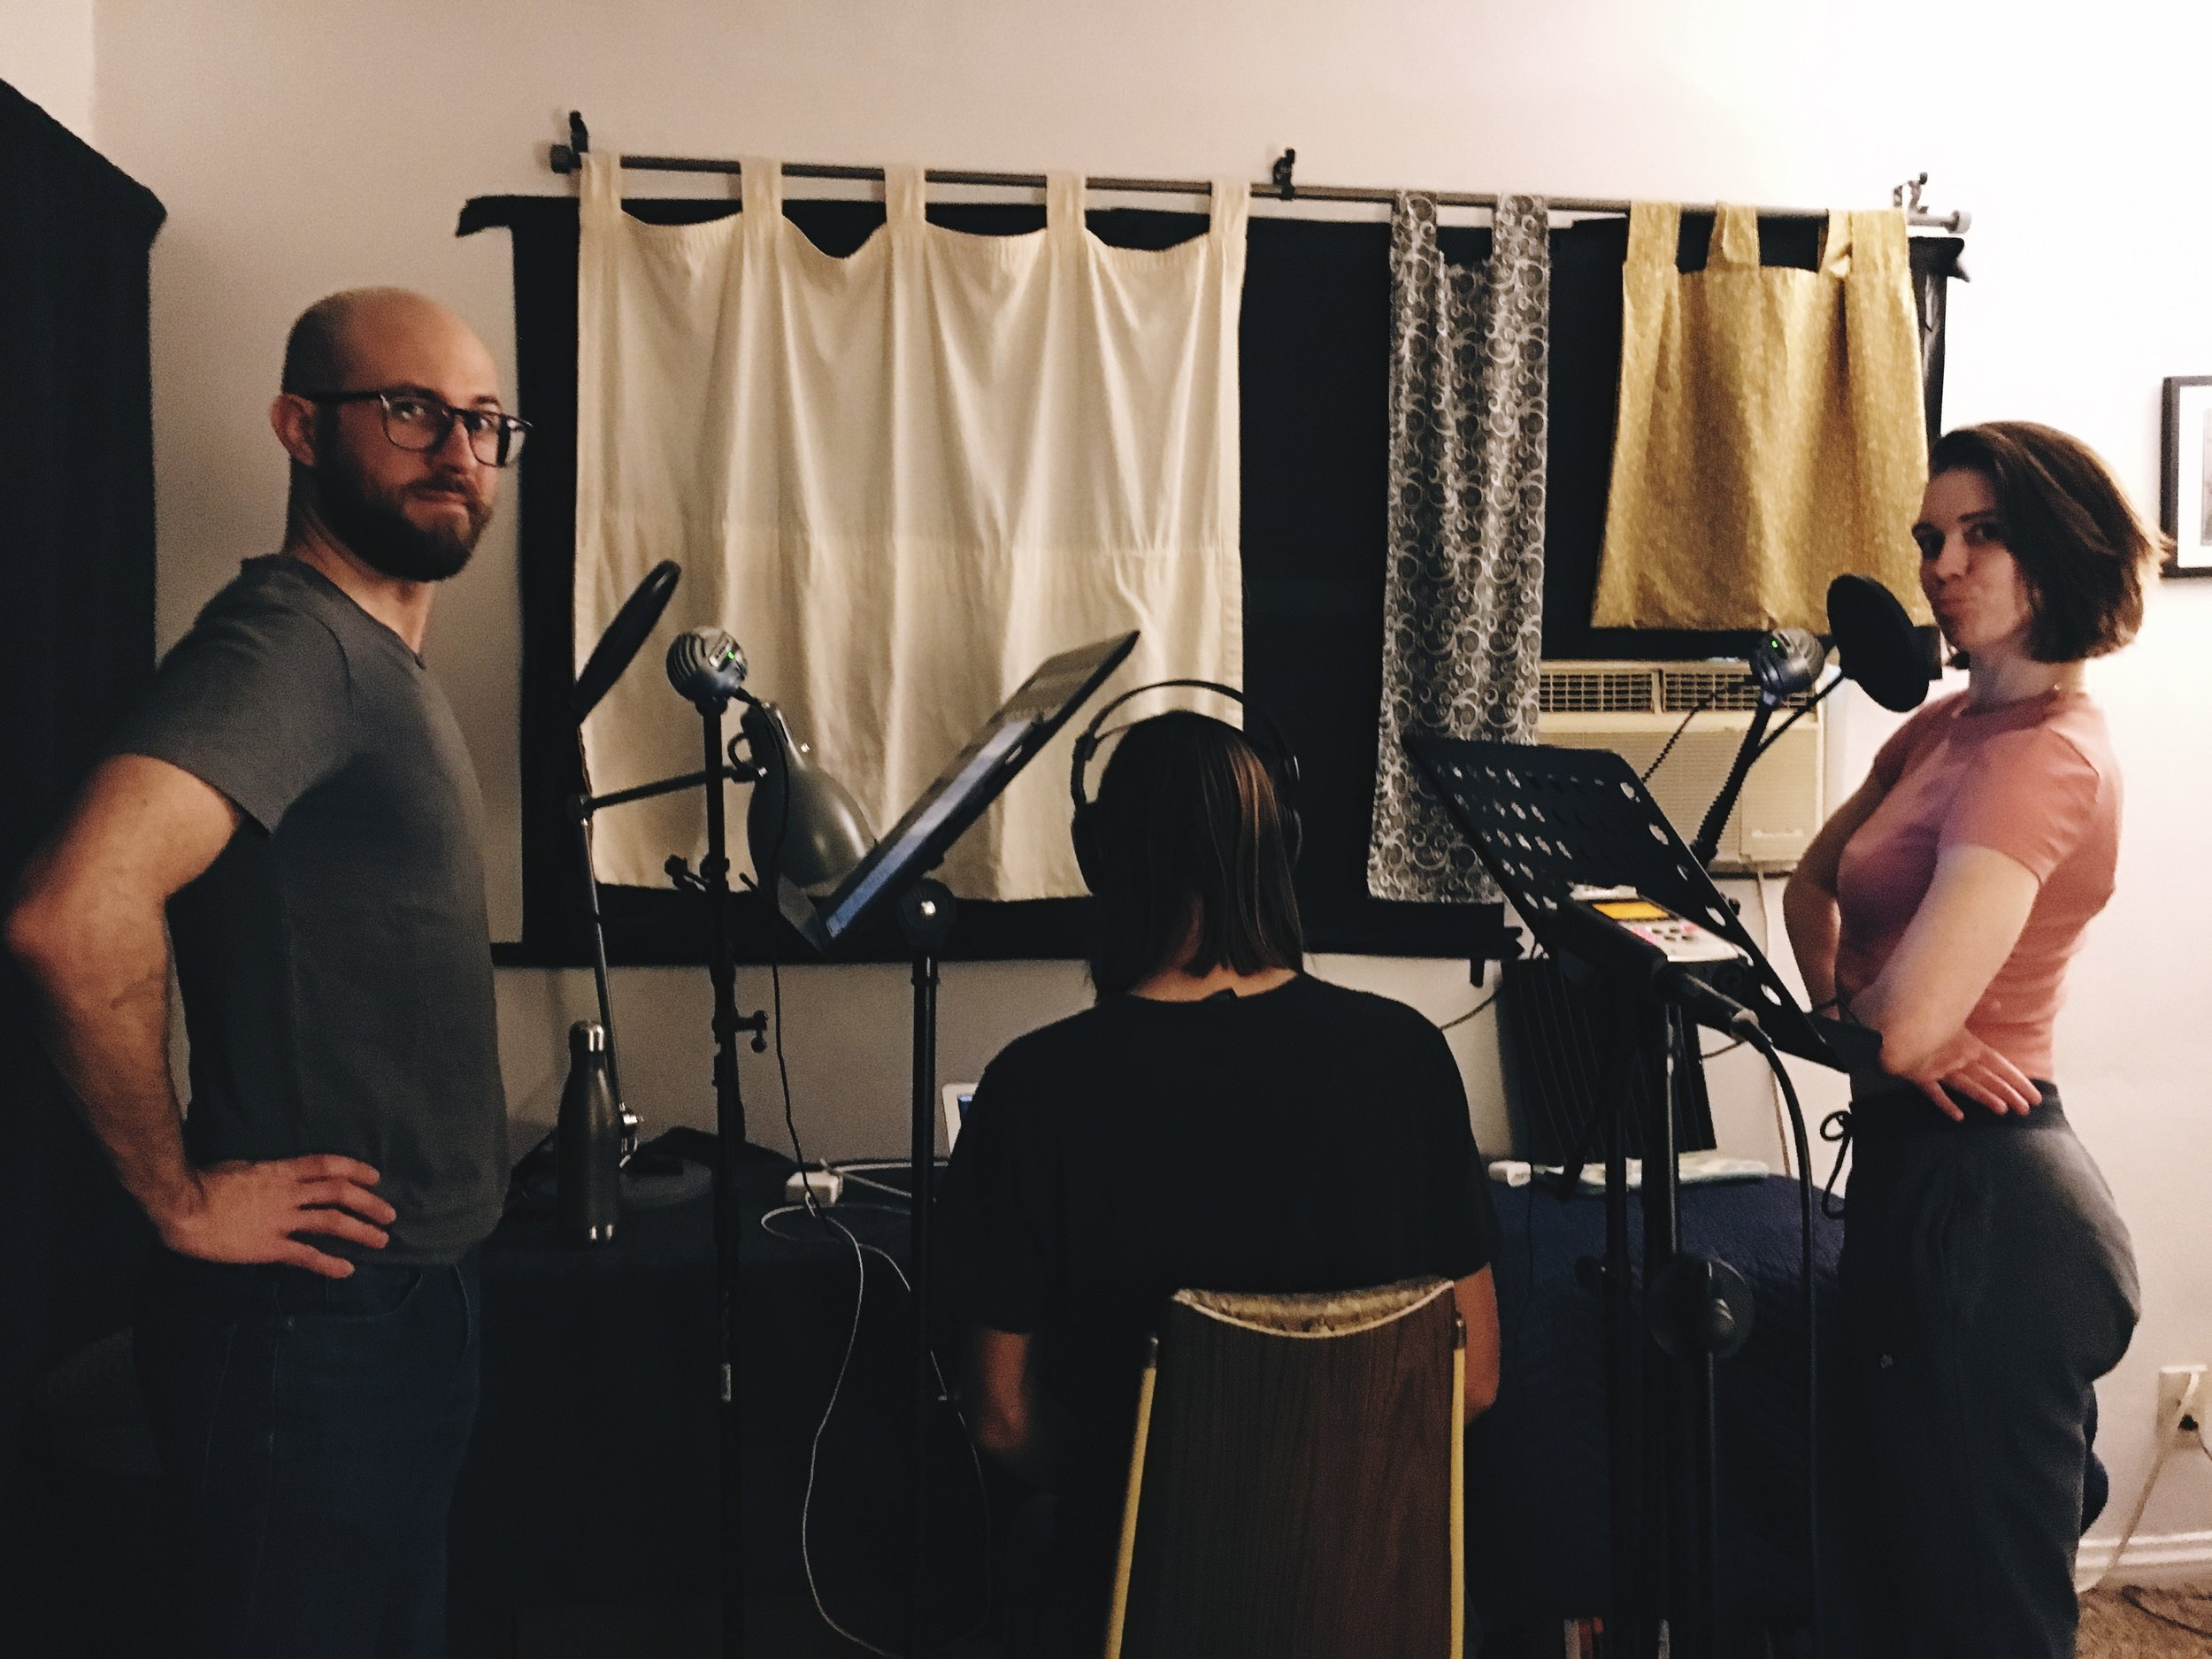 Chad and Kim get ready to record while Vince dials in the audio.